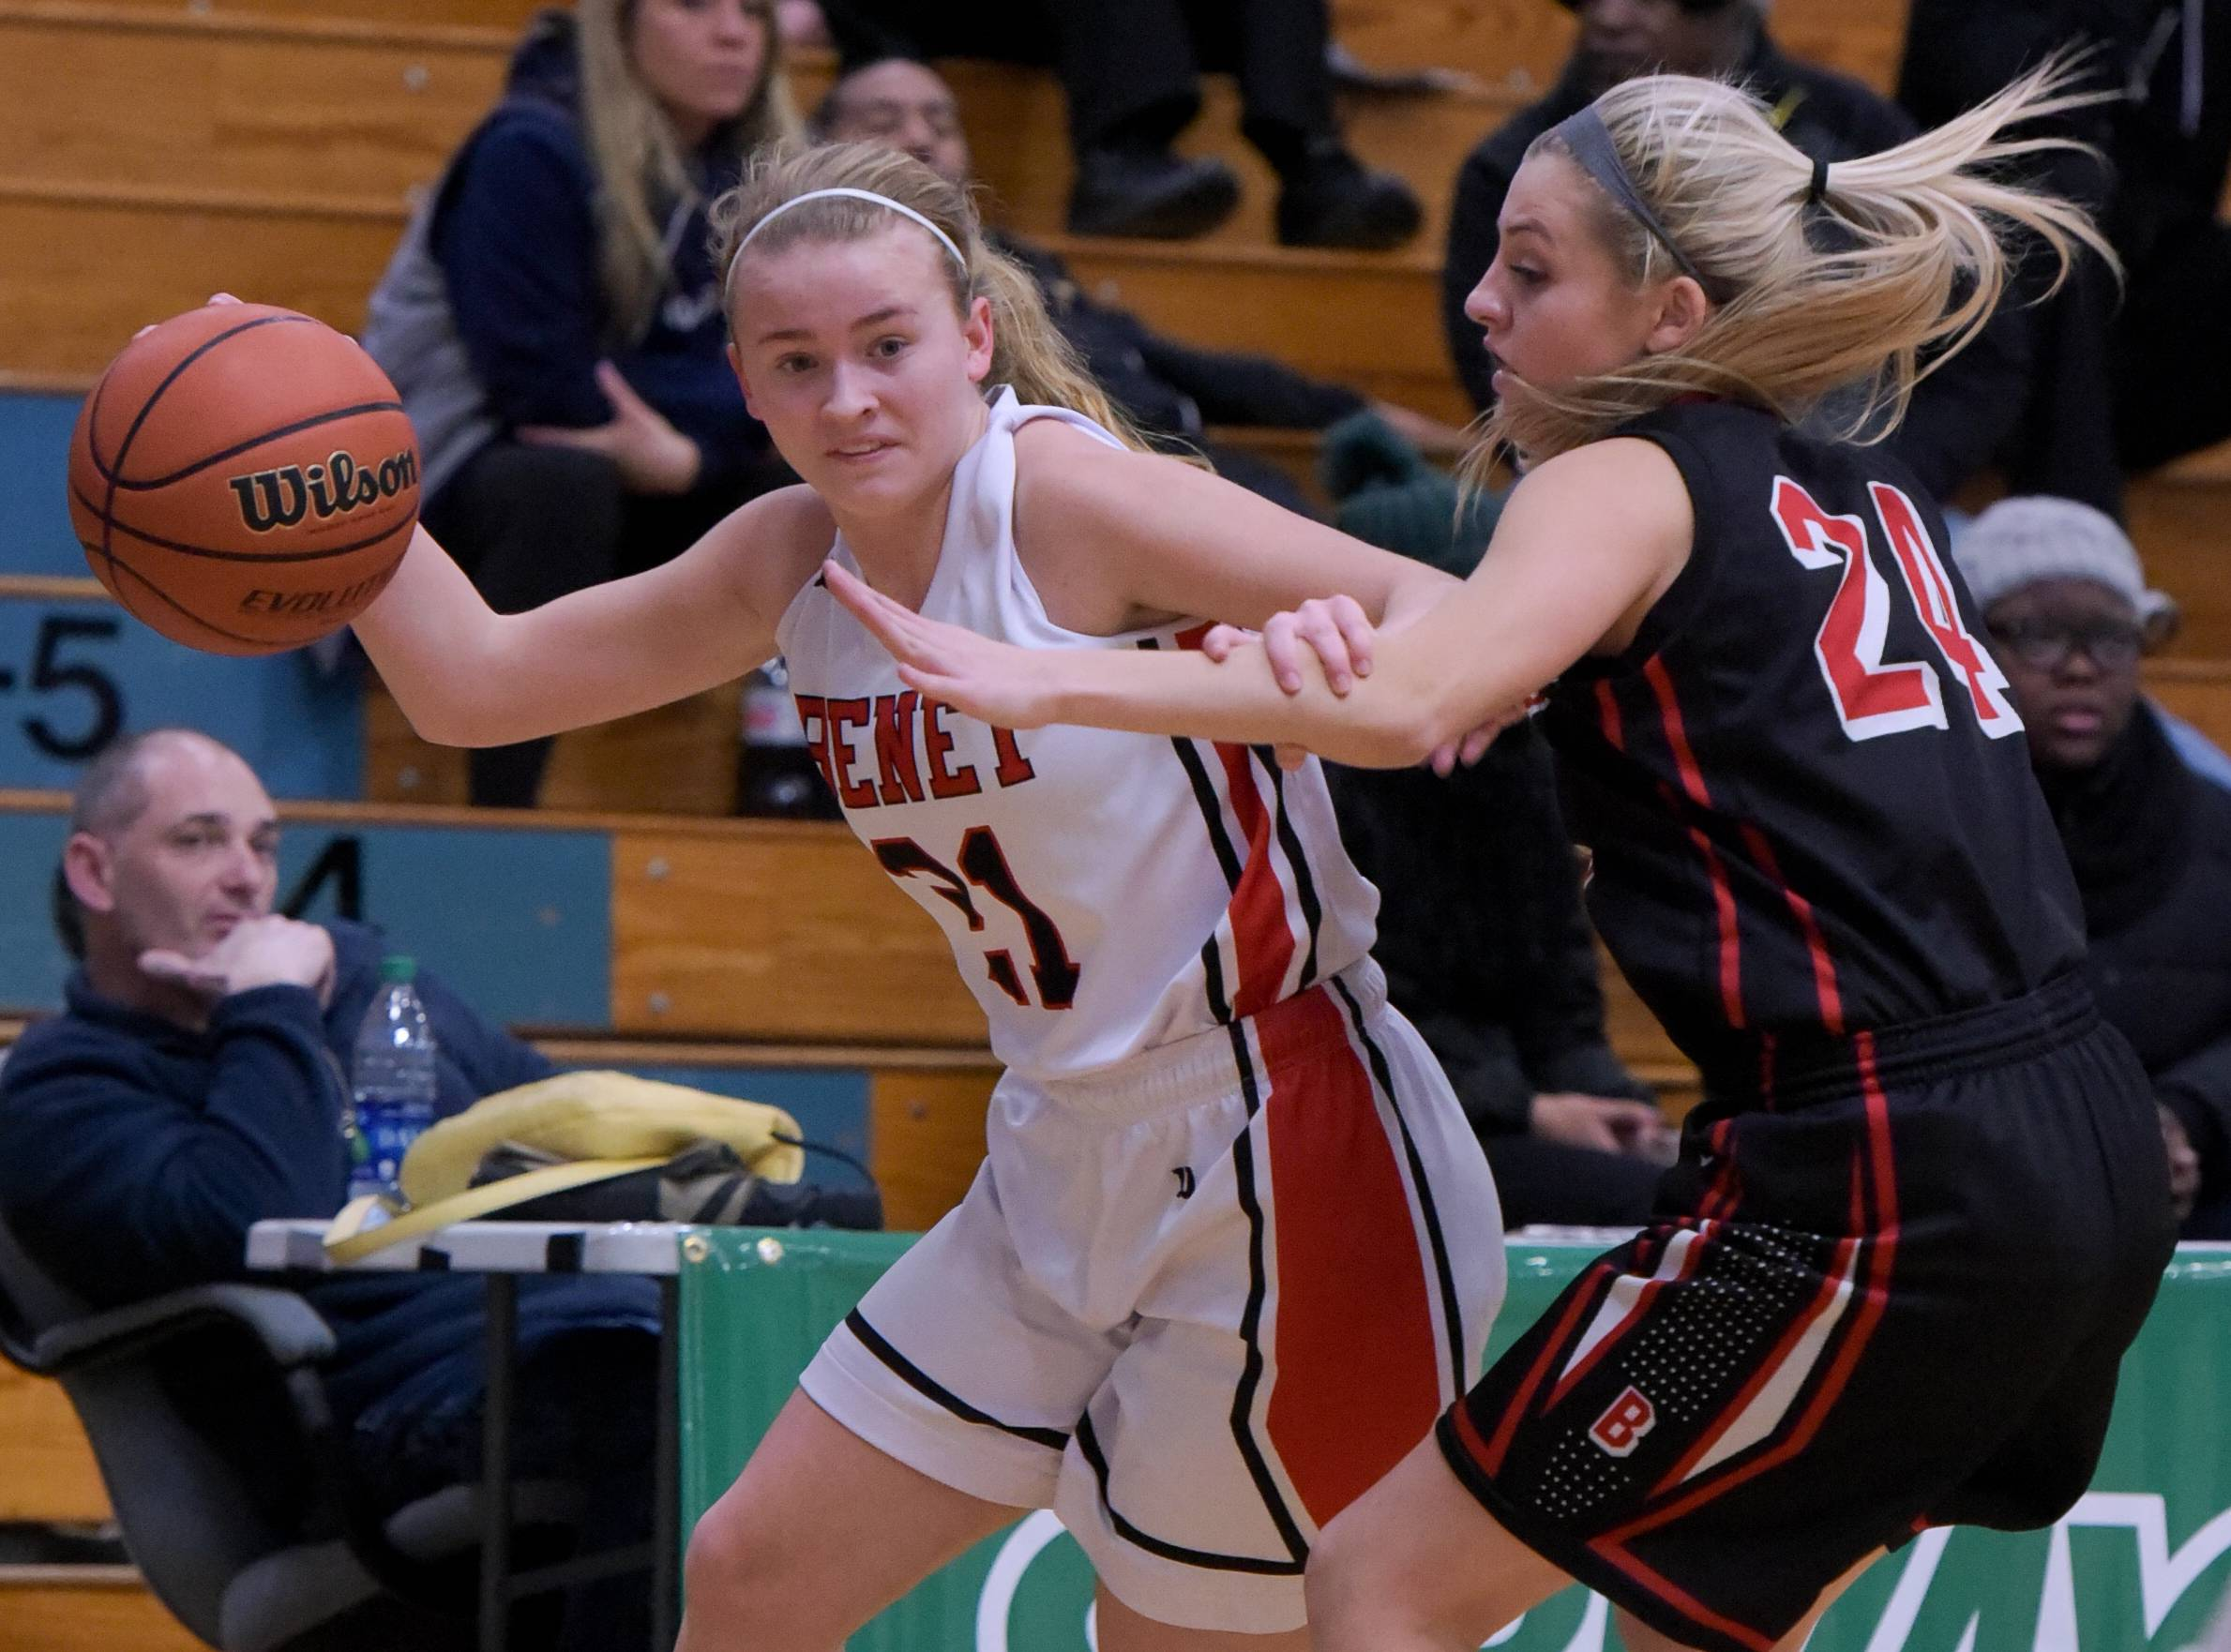 Benet Academy's Clara Prasse pushes past Bradley-Bourbonnais' Camryn BeDell during the Subway Classic girls basketball game on January 16, 2017.